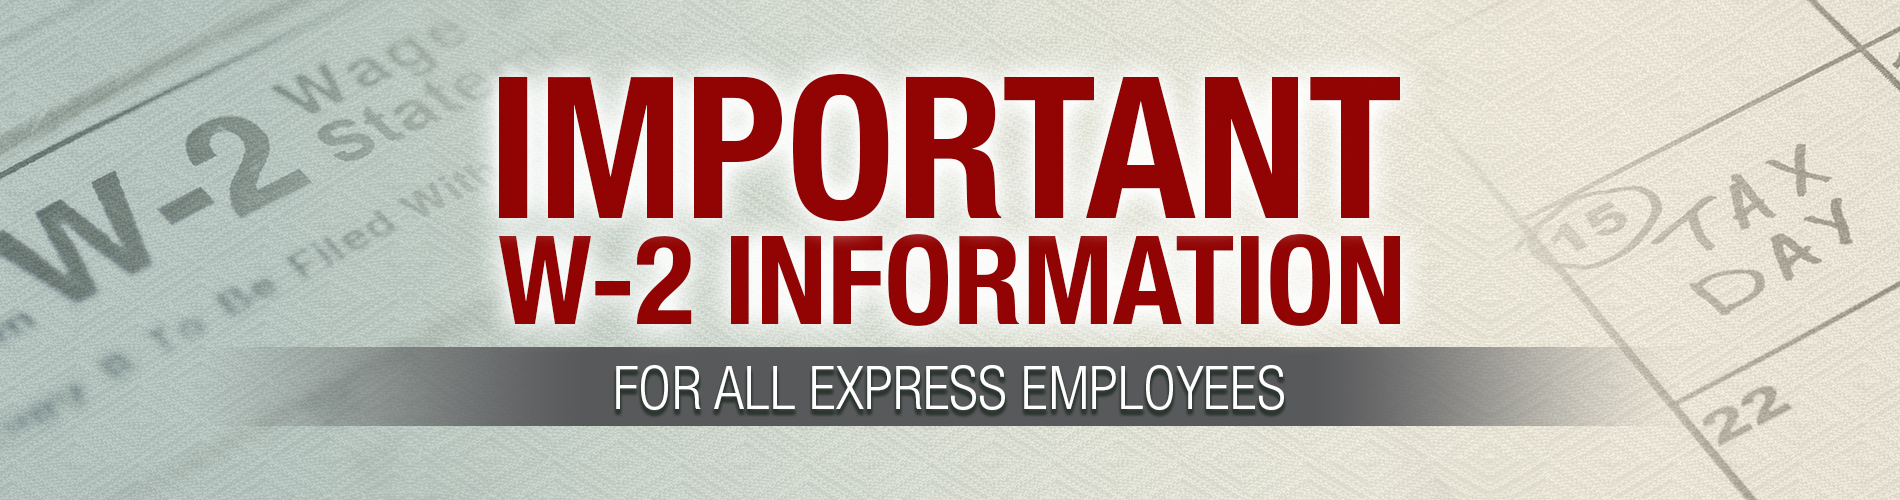 Attention All Employees - Important W-2 Information